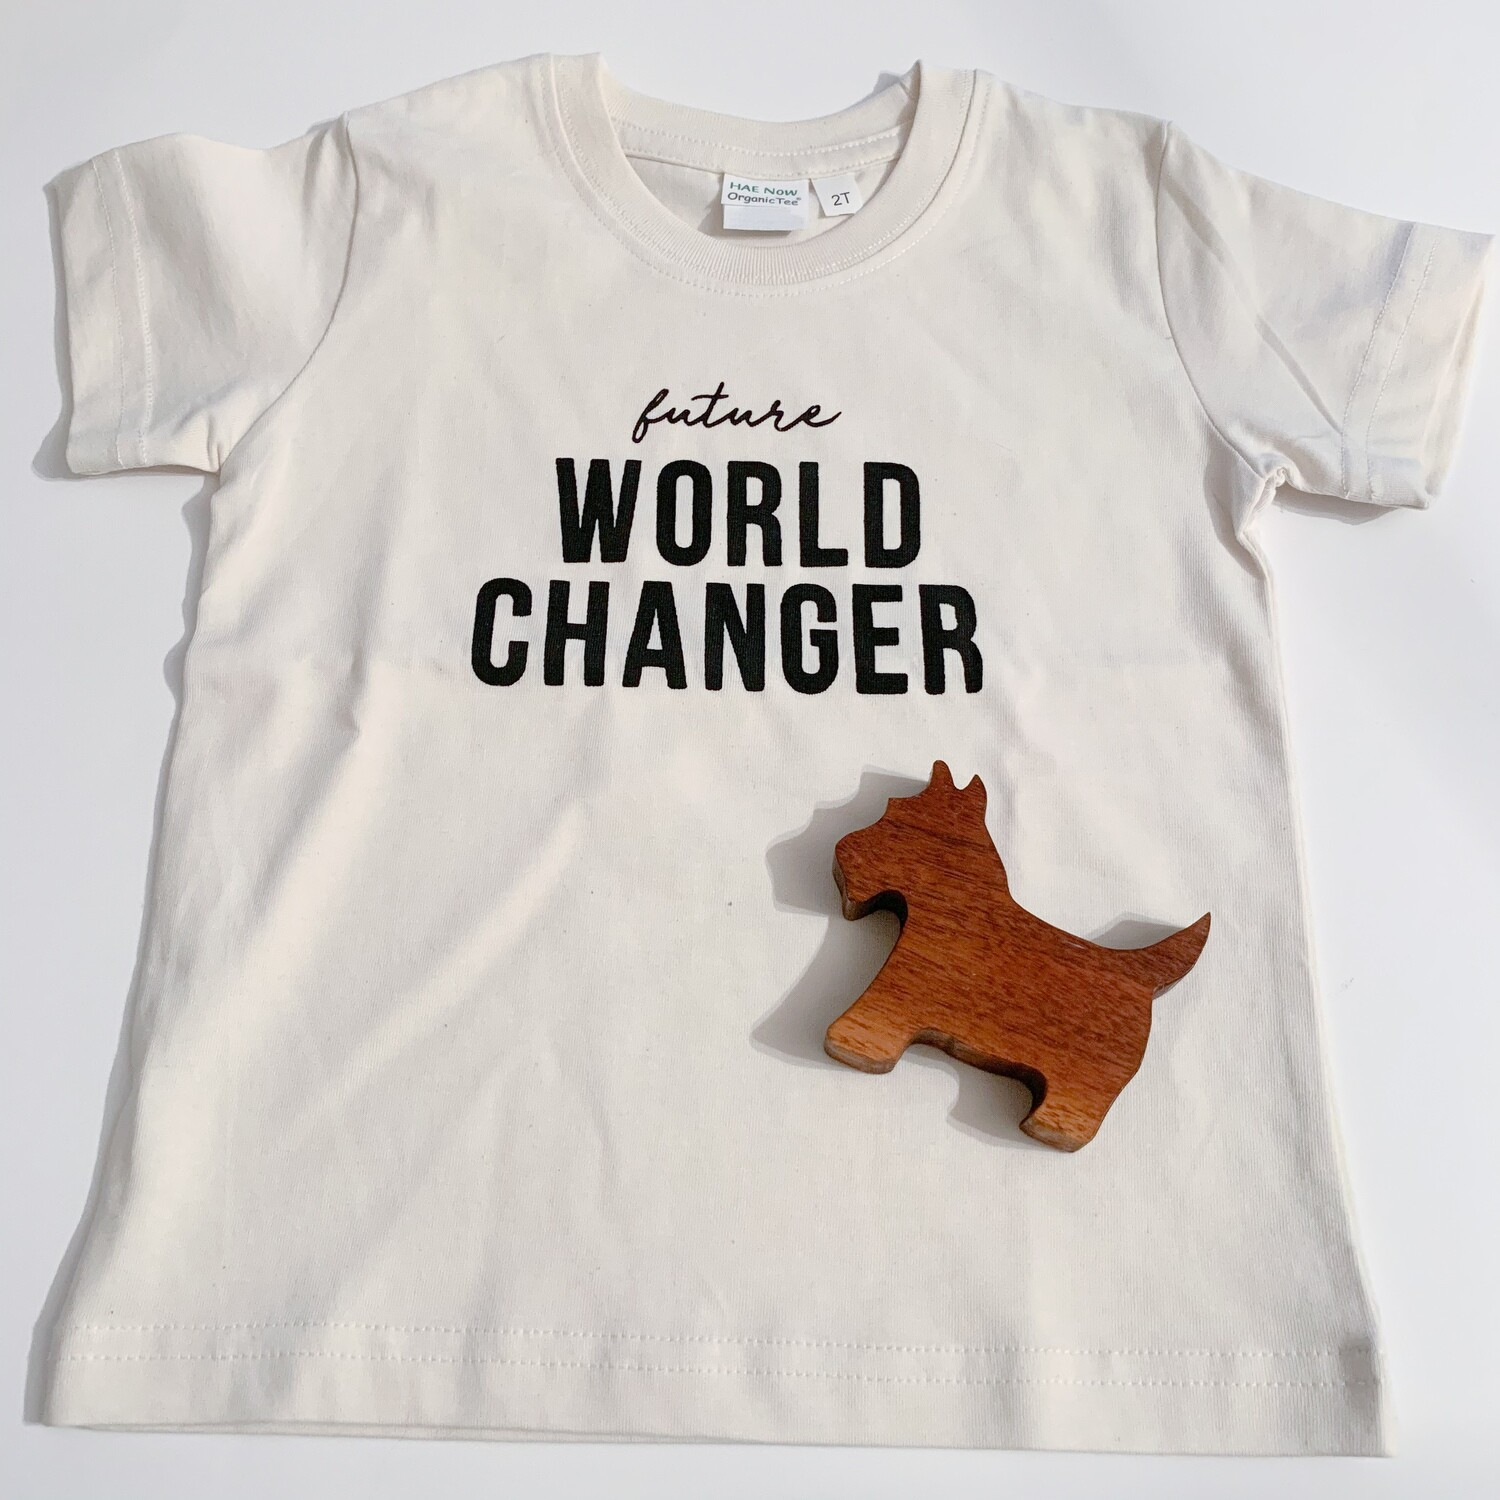 World Changer Shirt - Kids (2t)